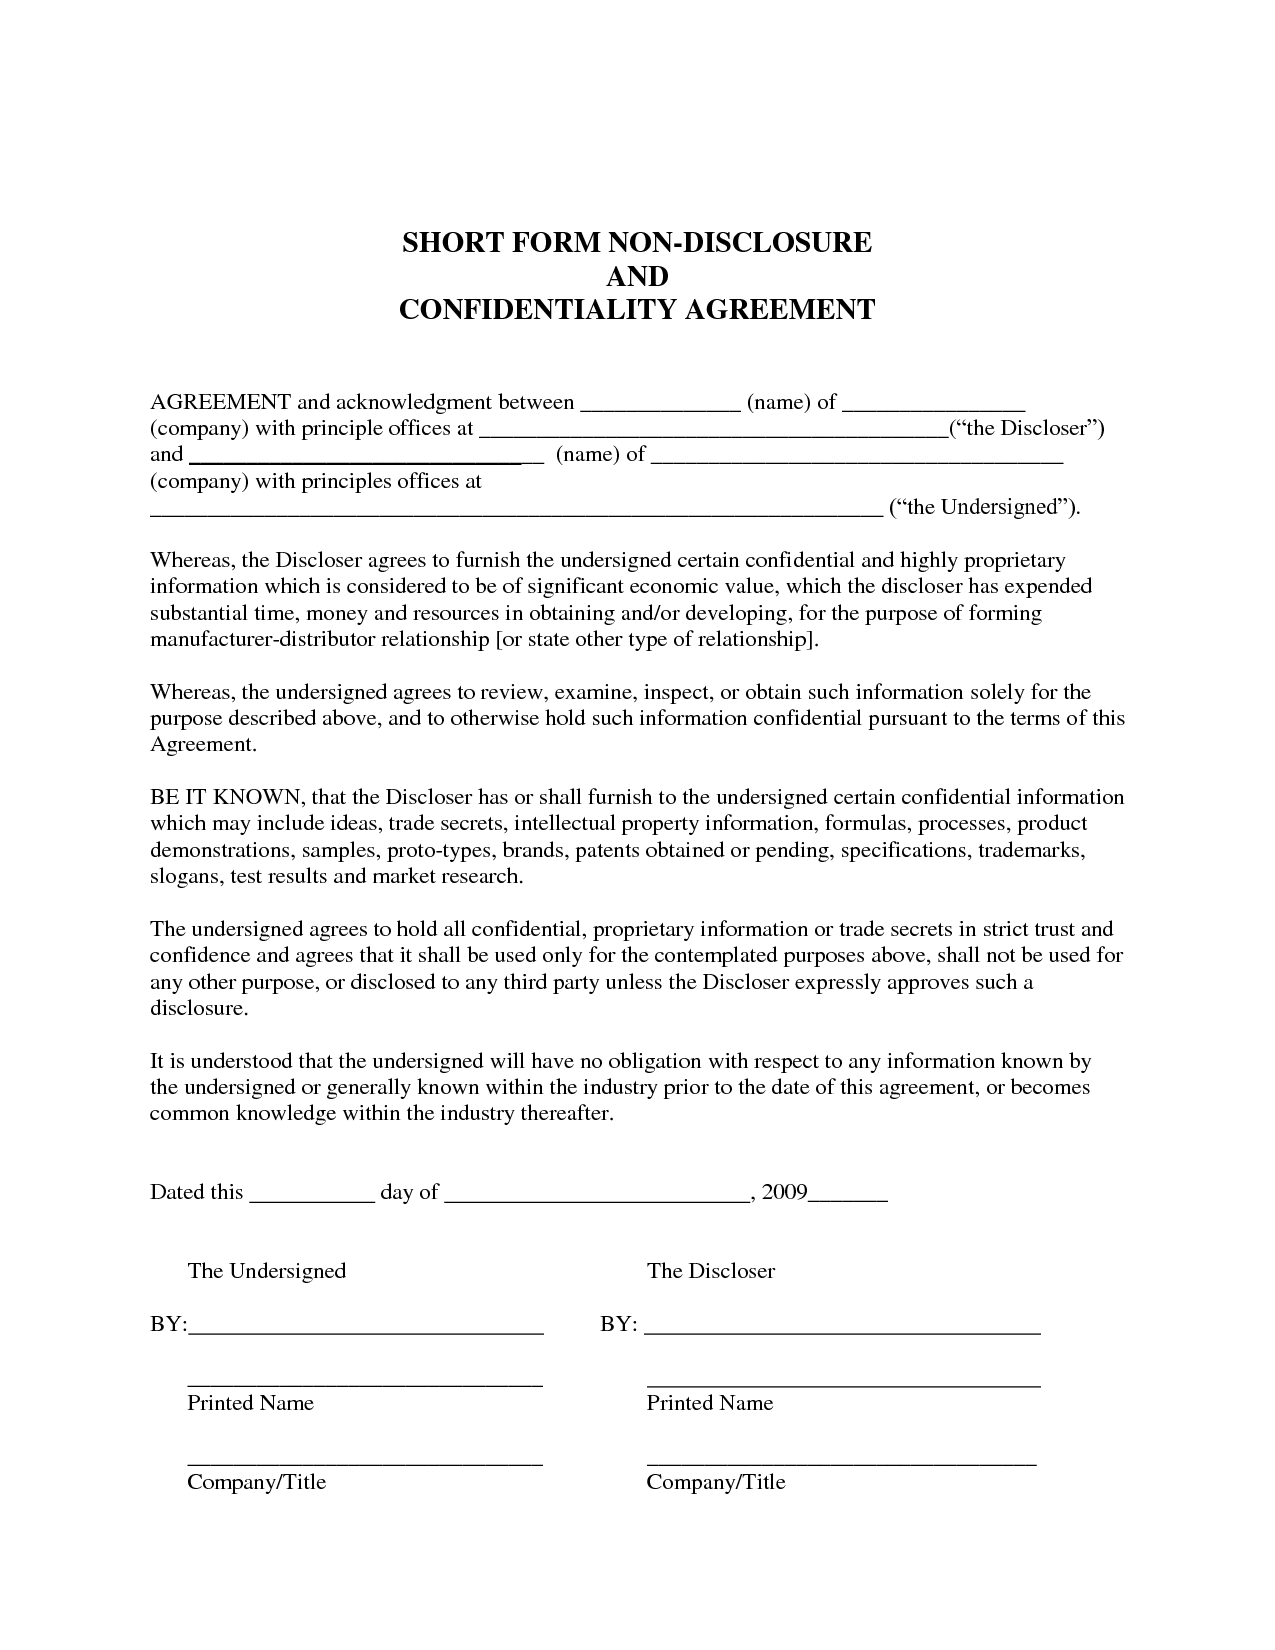 NonDisclosure Agreement Confidentiality Agreement Sample For – Confidentiality Agreement Form